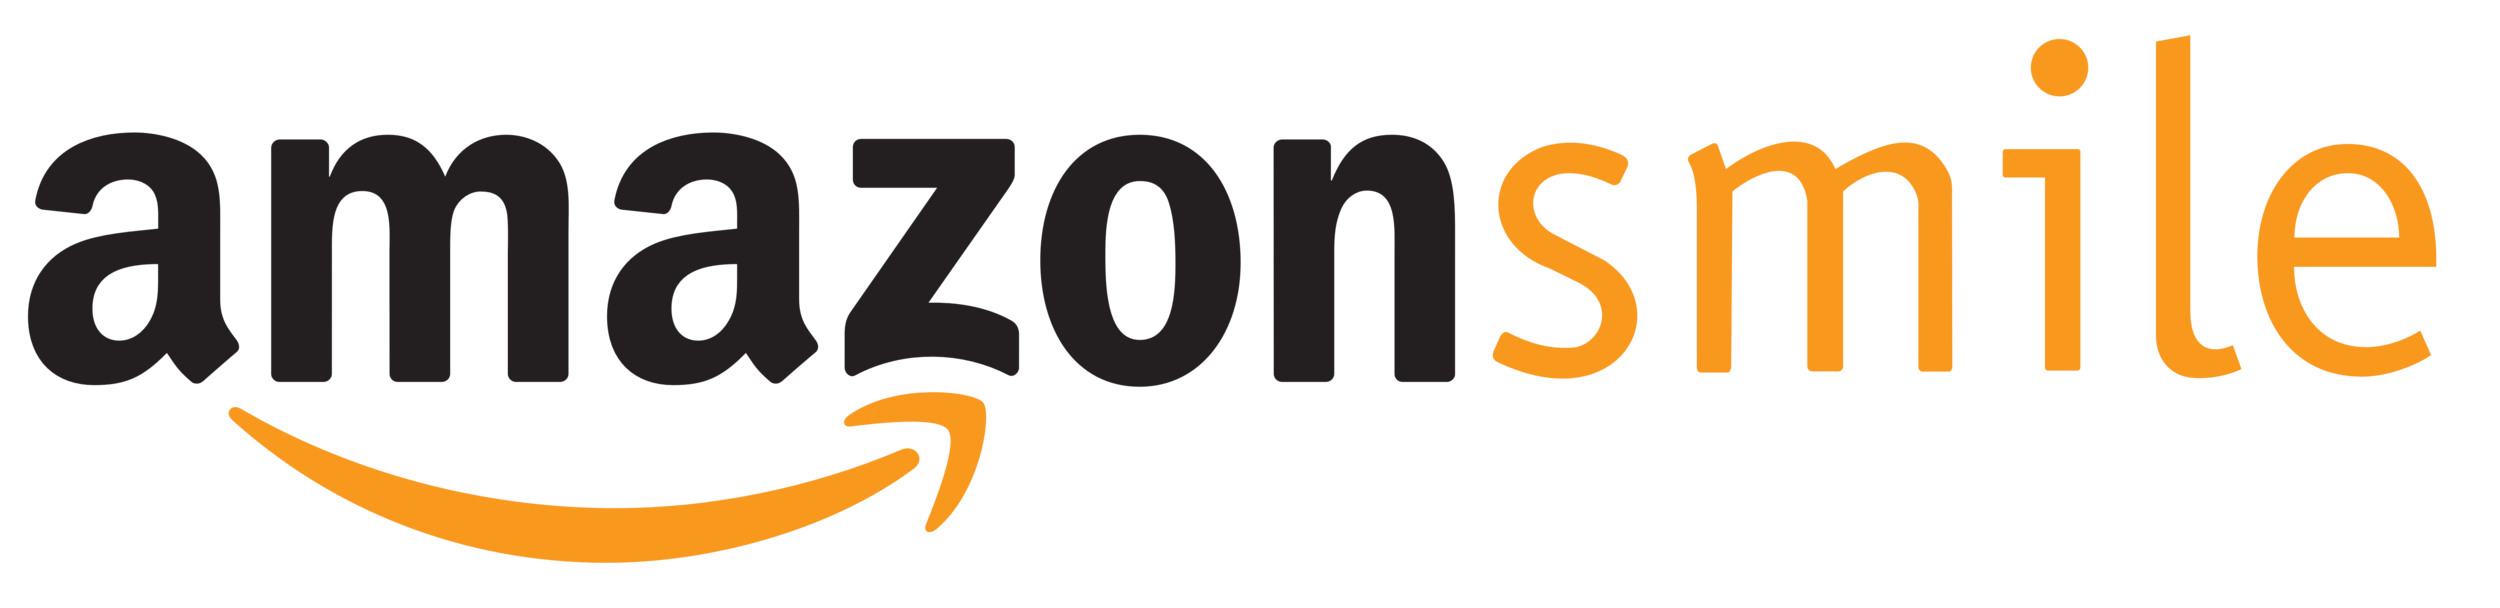 You can also donate by shopping on Amazon.